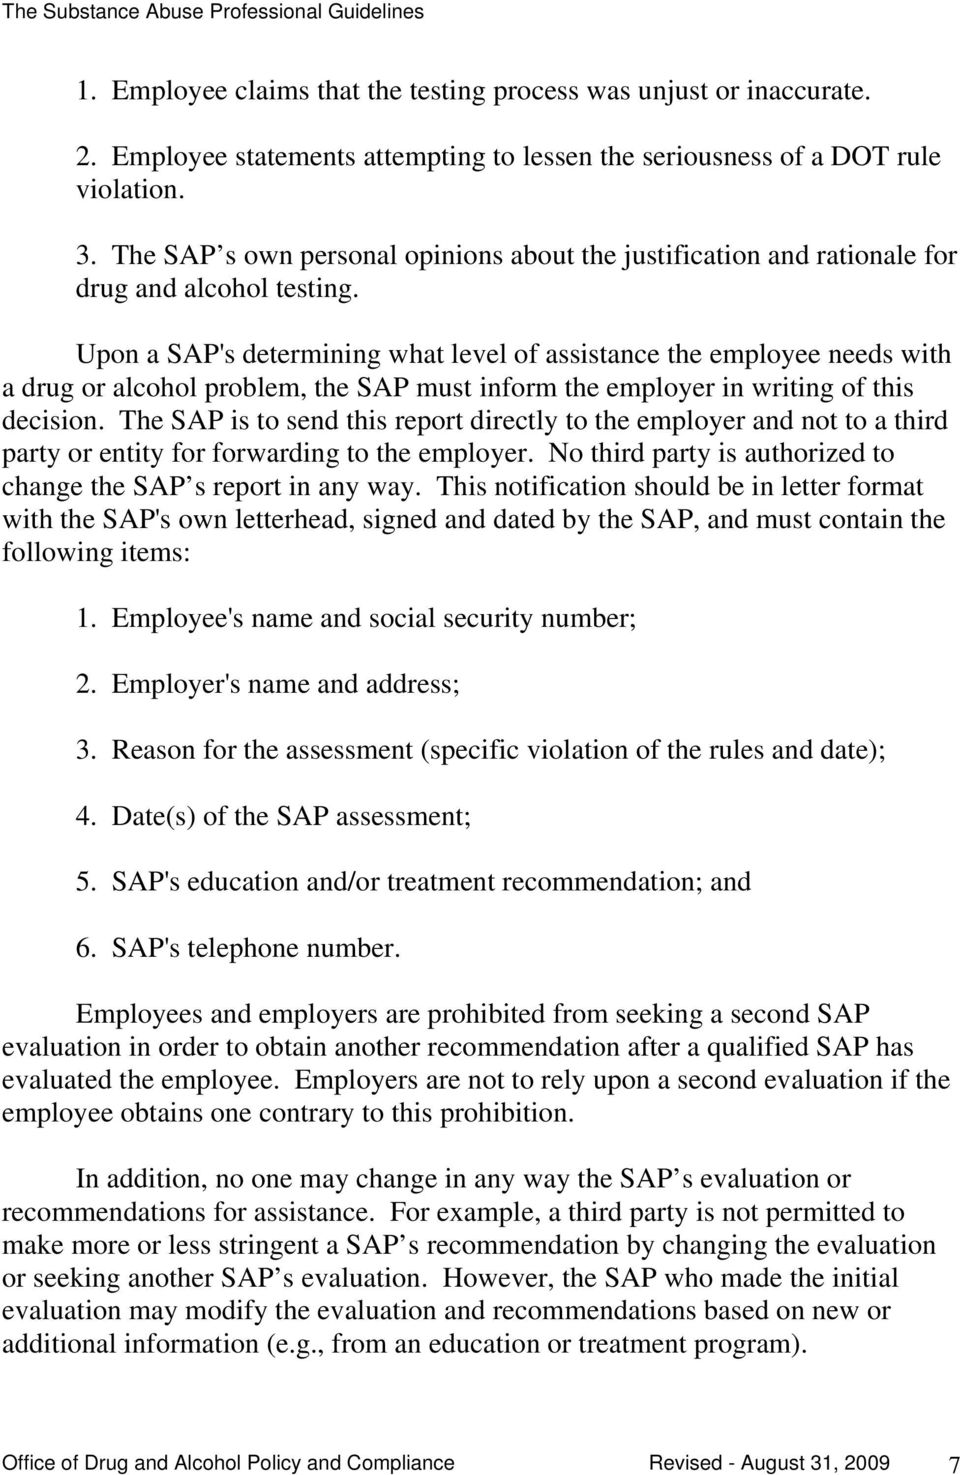 Upon a SAP's determining what level of assistance the employee needs with a drug or alcohol problem, the SAP must inform the employer in writing of this decision.